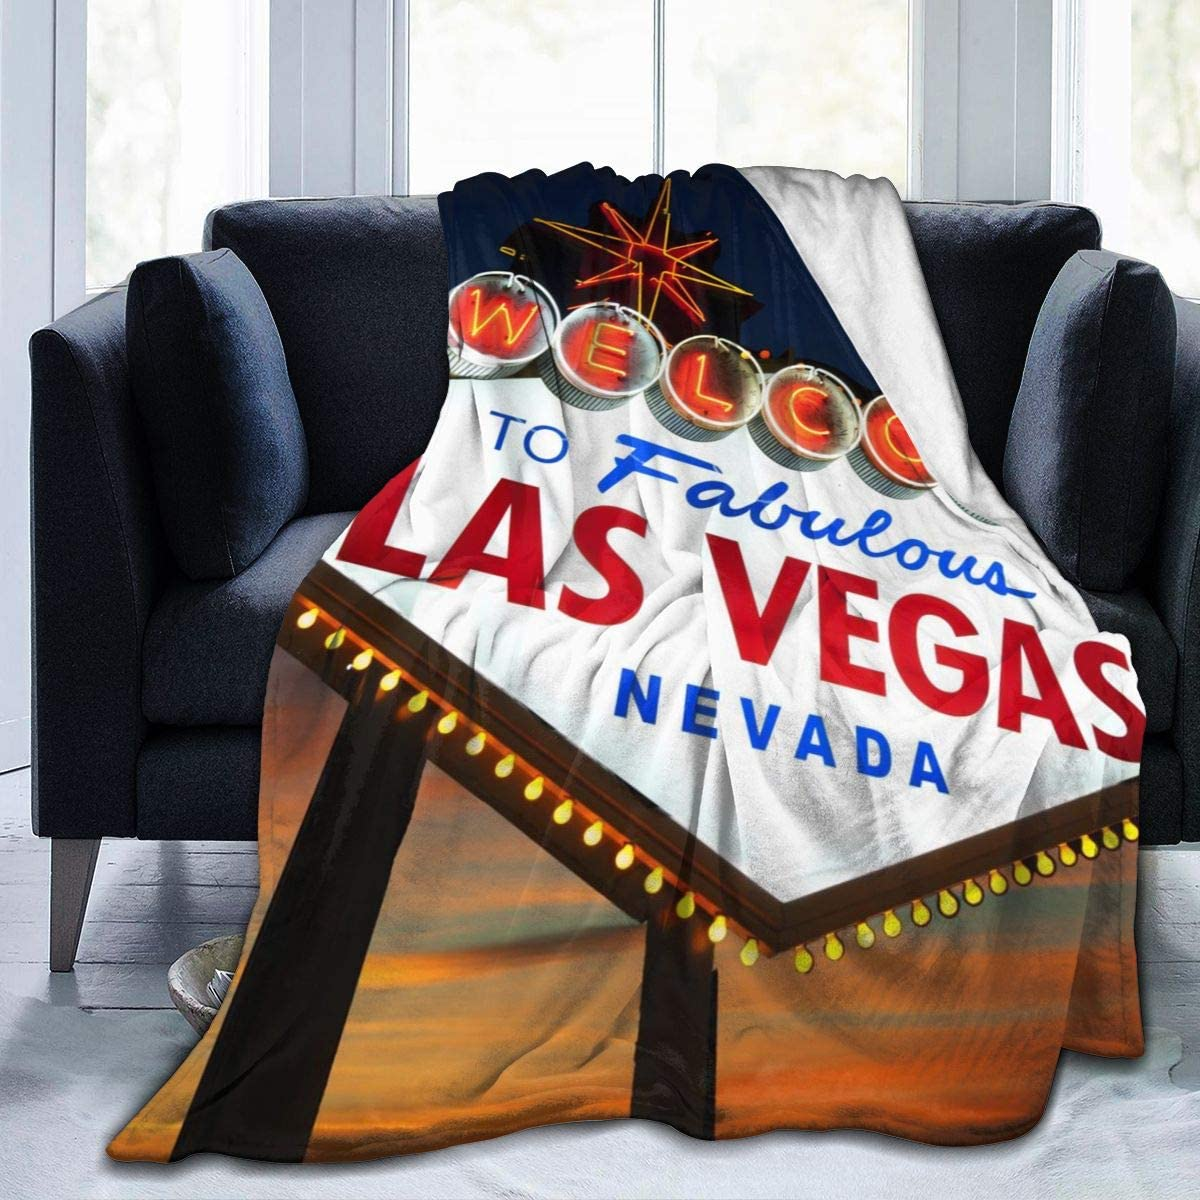 UNSUWU Welcome to 『1年保証』 The Las Vegas U for Blankets Couch Sign OUTLET SALE Throw